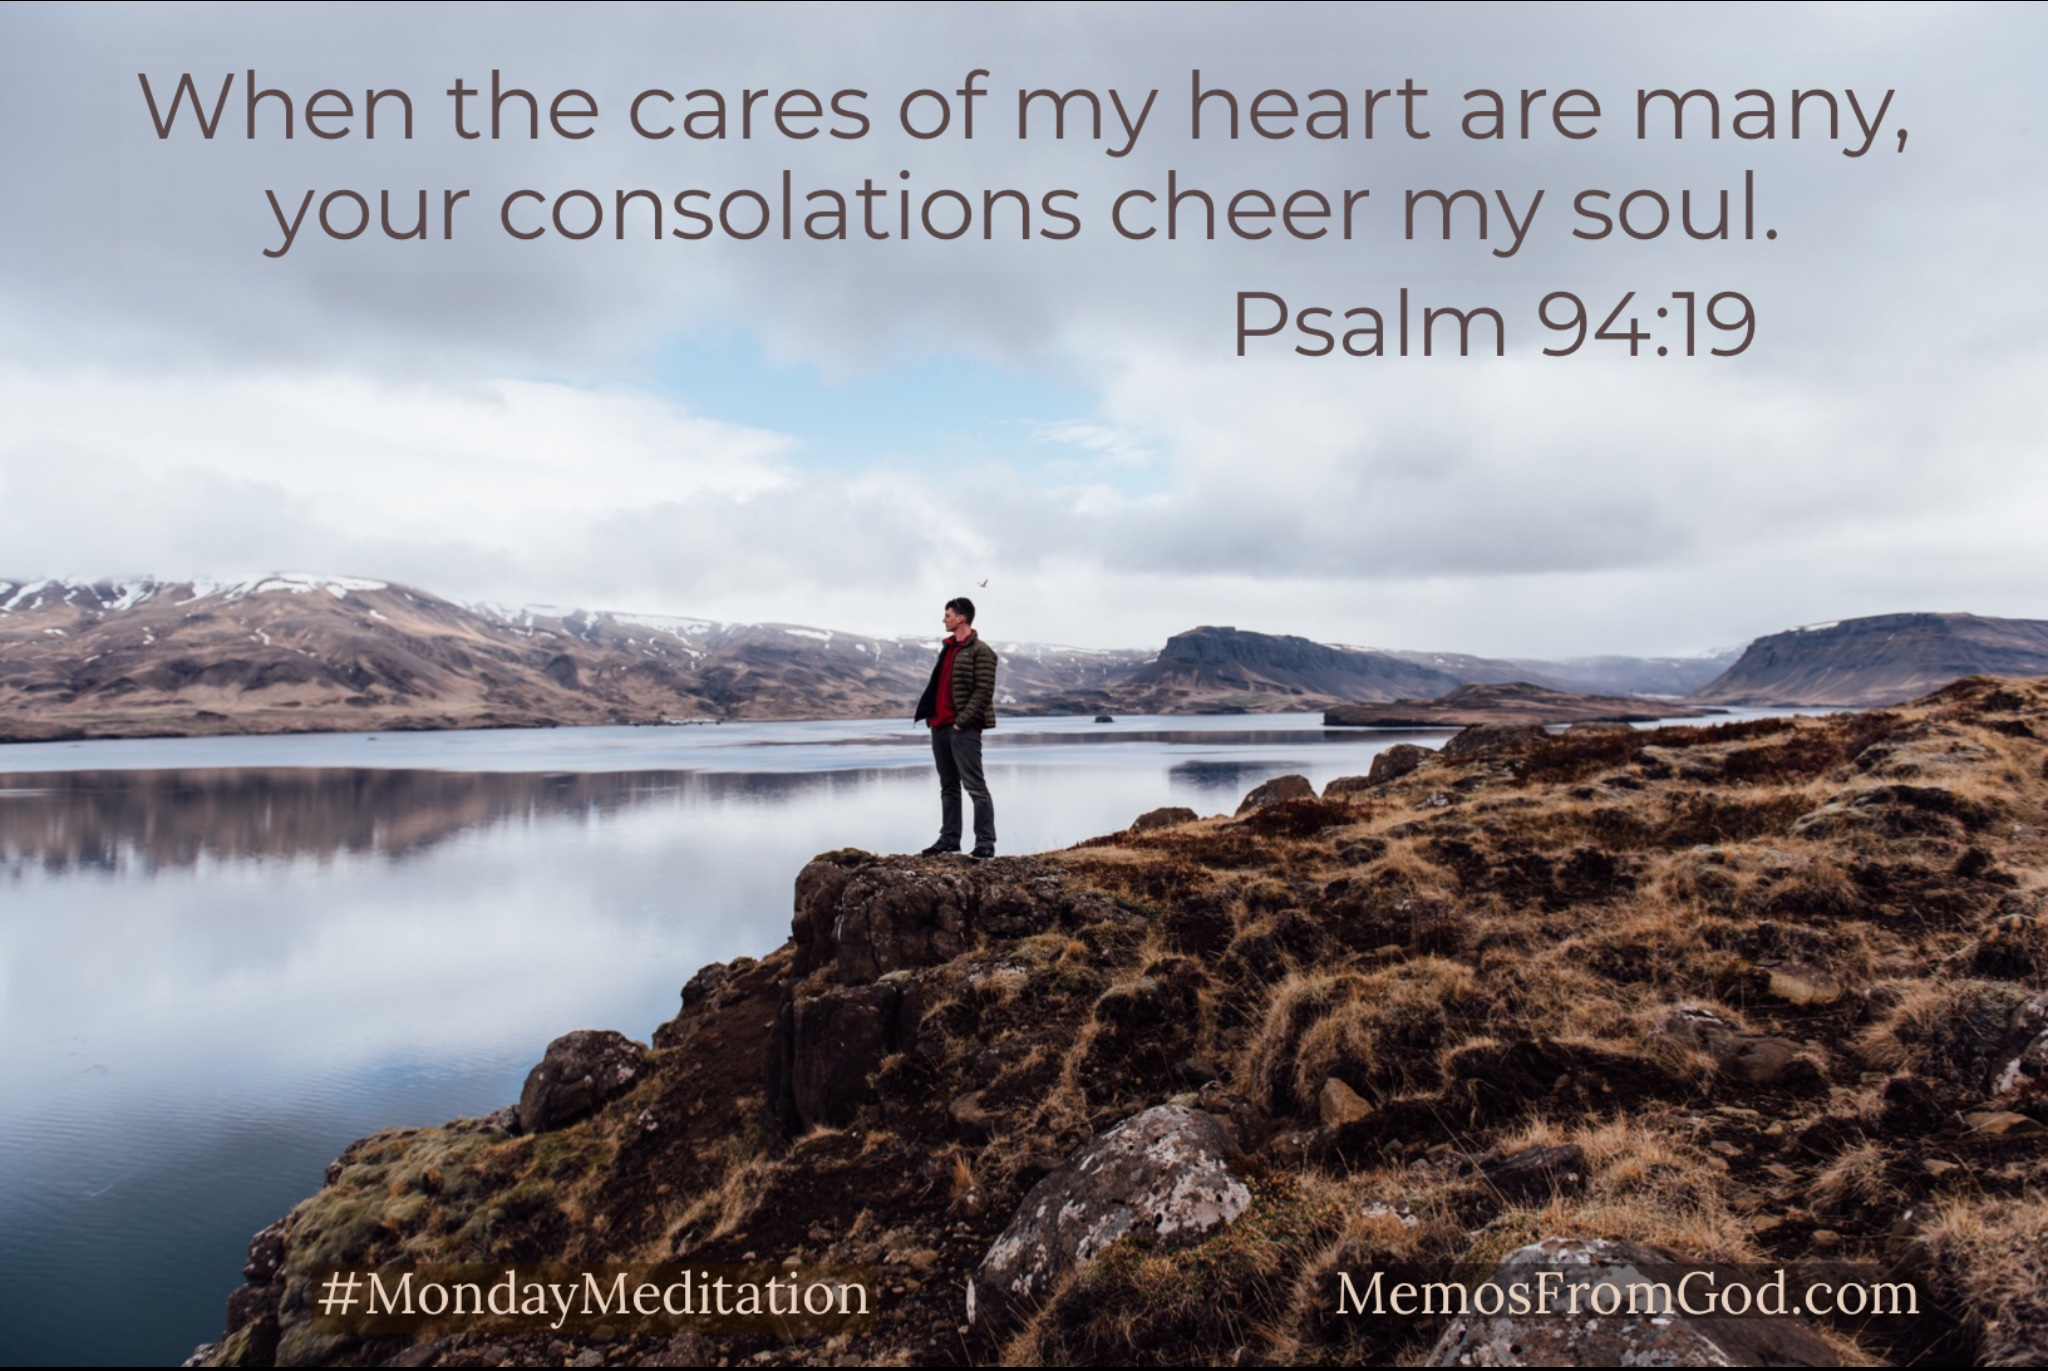 A man standing on a rocky shore looking out over calm water. Caption: When the cares of my heart are many, your consolations cheer my soul. Psalm 94:19